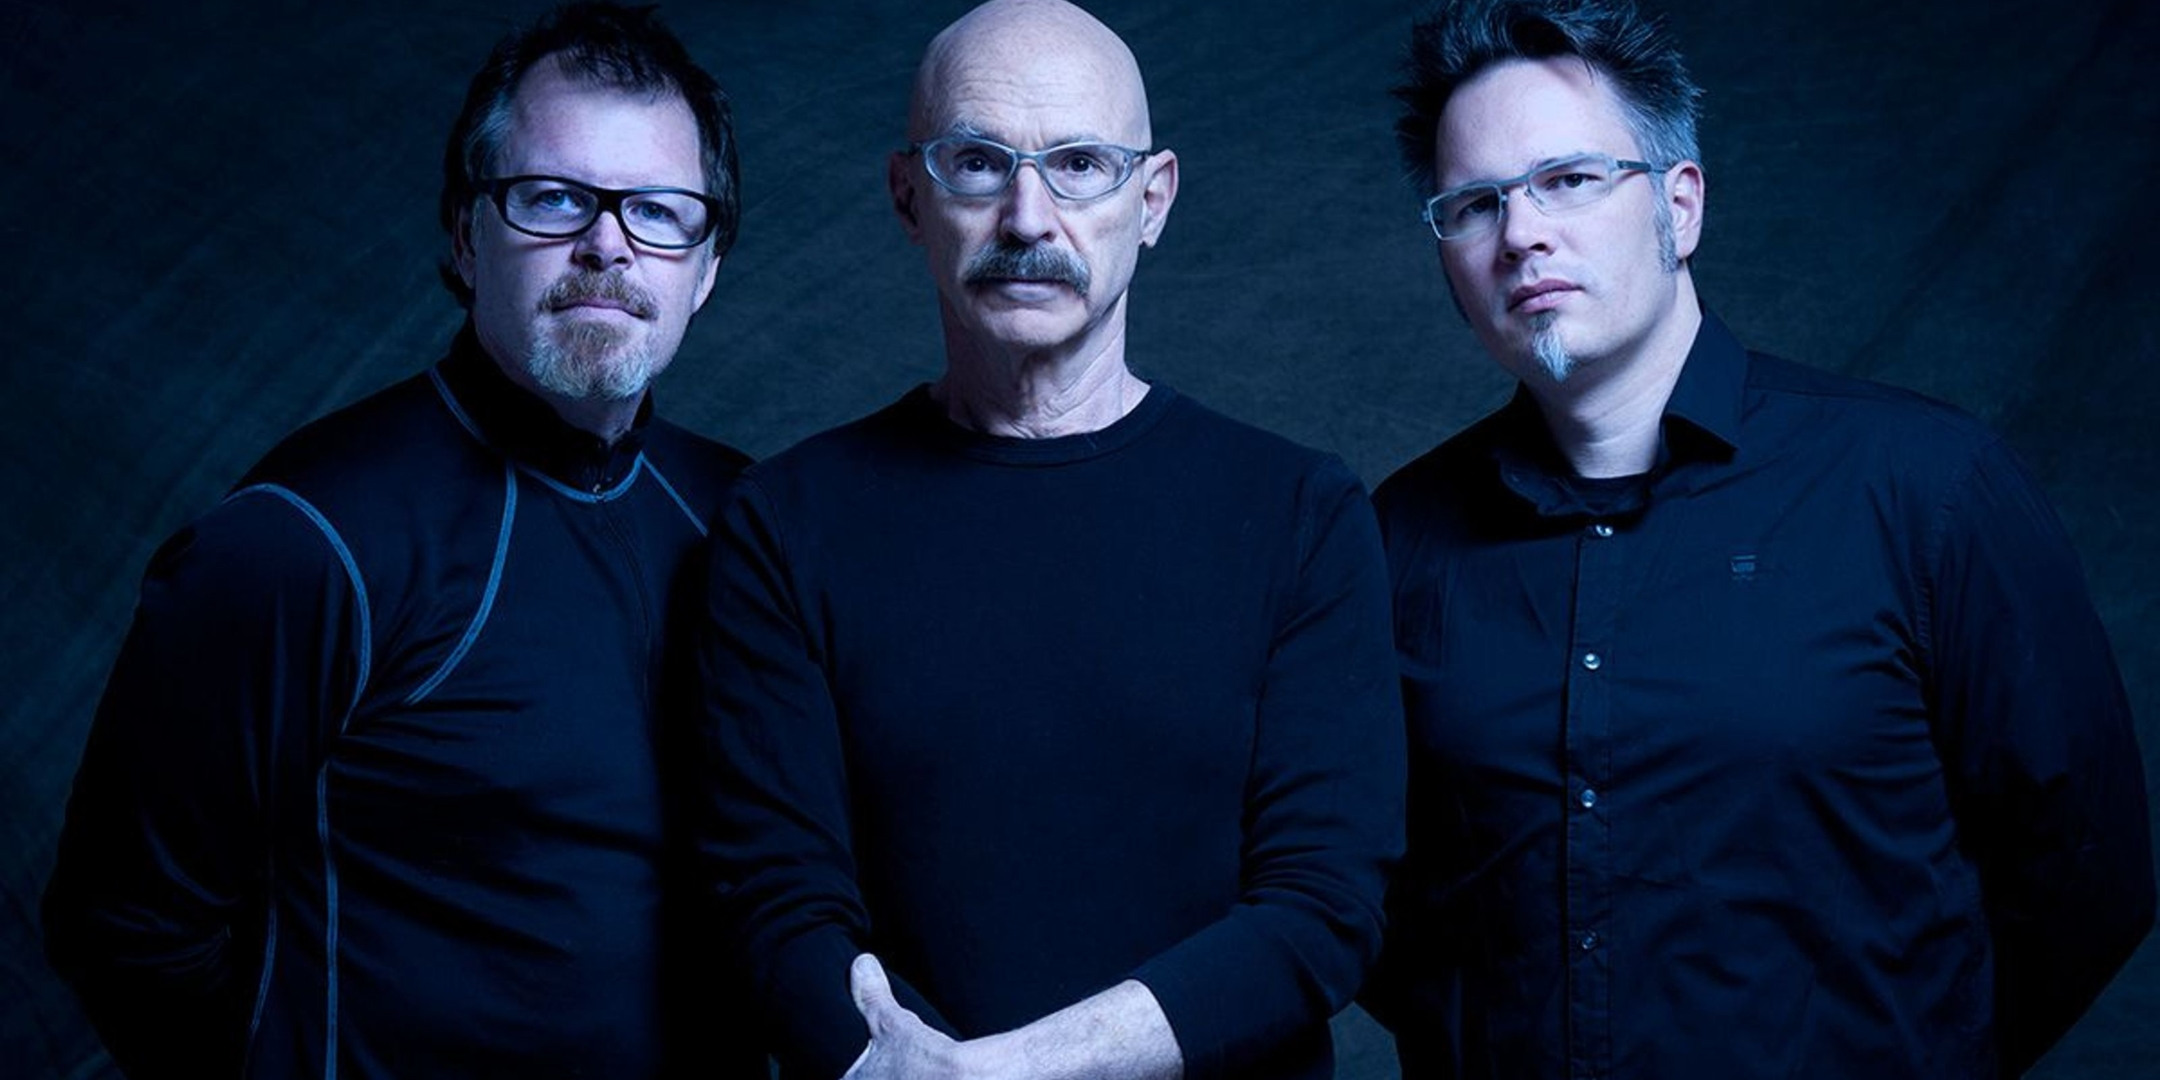 STICK MEN featuring Tony Levin, Markus Reuter and Pat Mastelotto